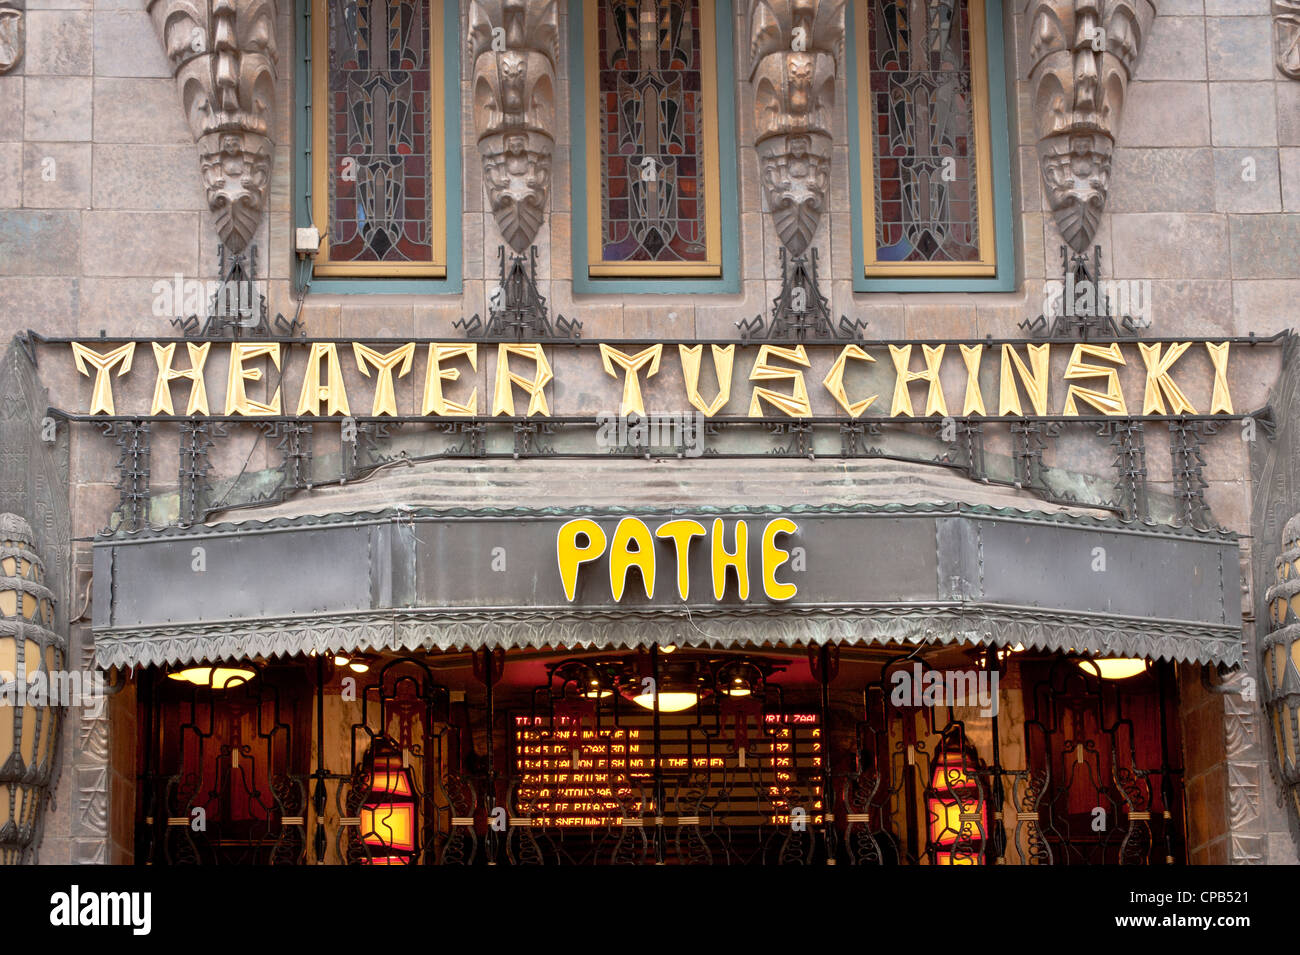 Pathé Tuschinski Cinema in Amsterdam - Stock Image